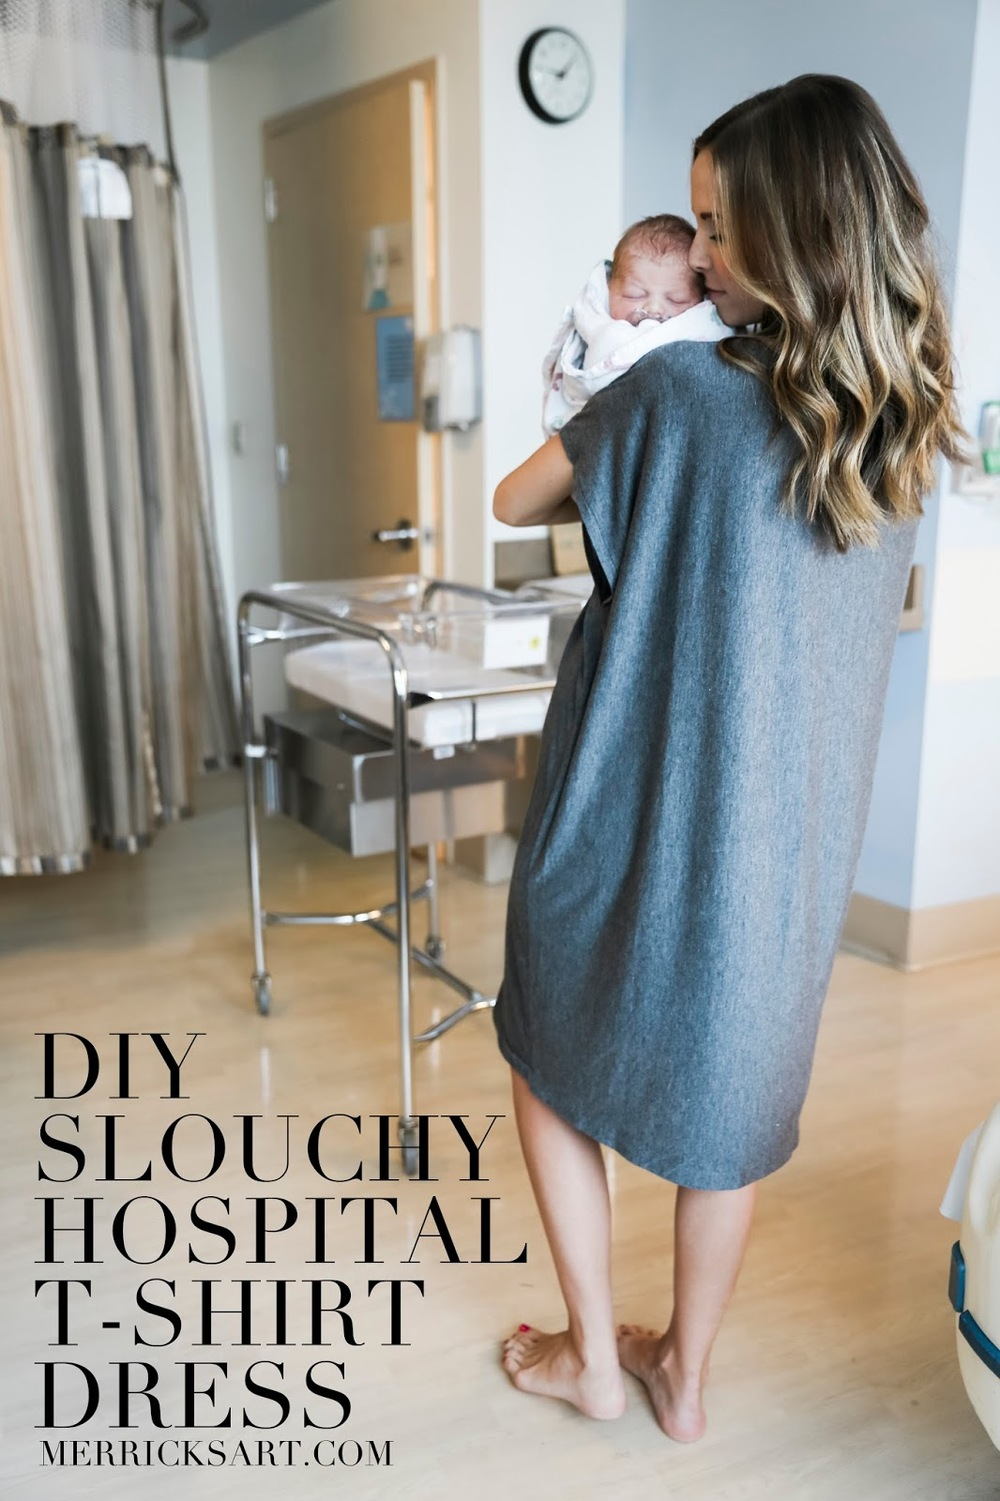 DIY FRIDAY: SLOUCHY HOSPITAL T-SHIRT DRESS from Merrick's Art